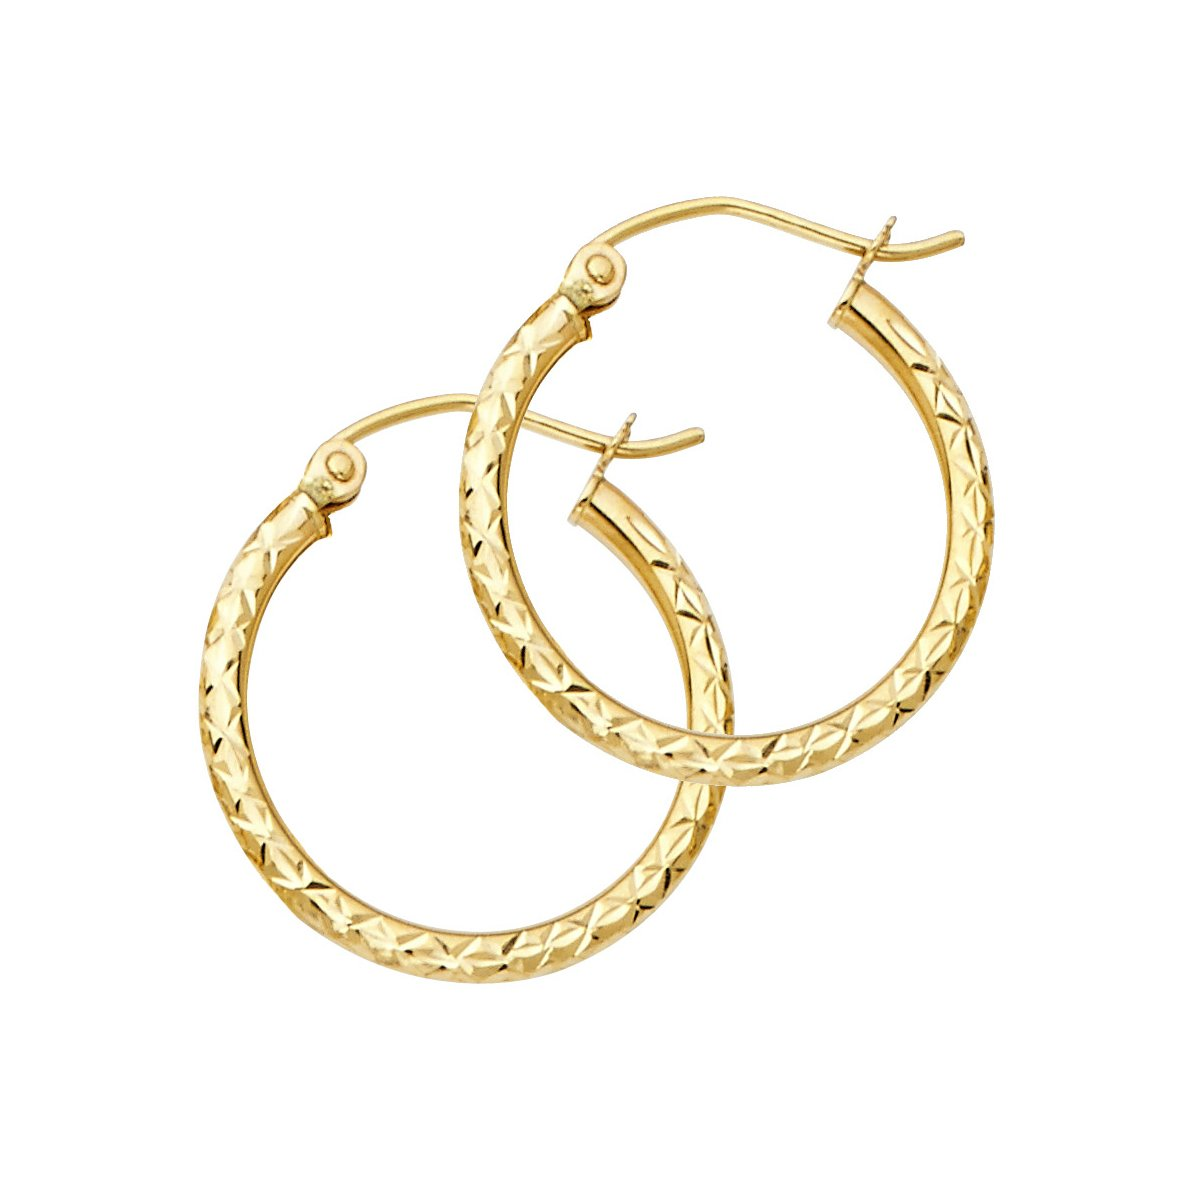 14K Yellow Gold 1.5mm Hoop Earrings - 33/25/20/15mm (Diameter - 20 MM)